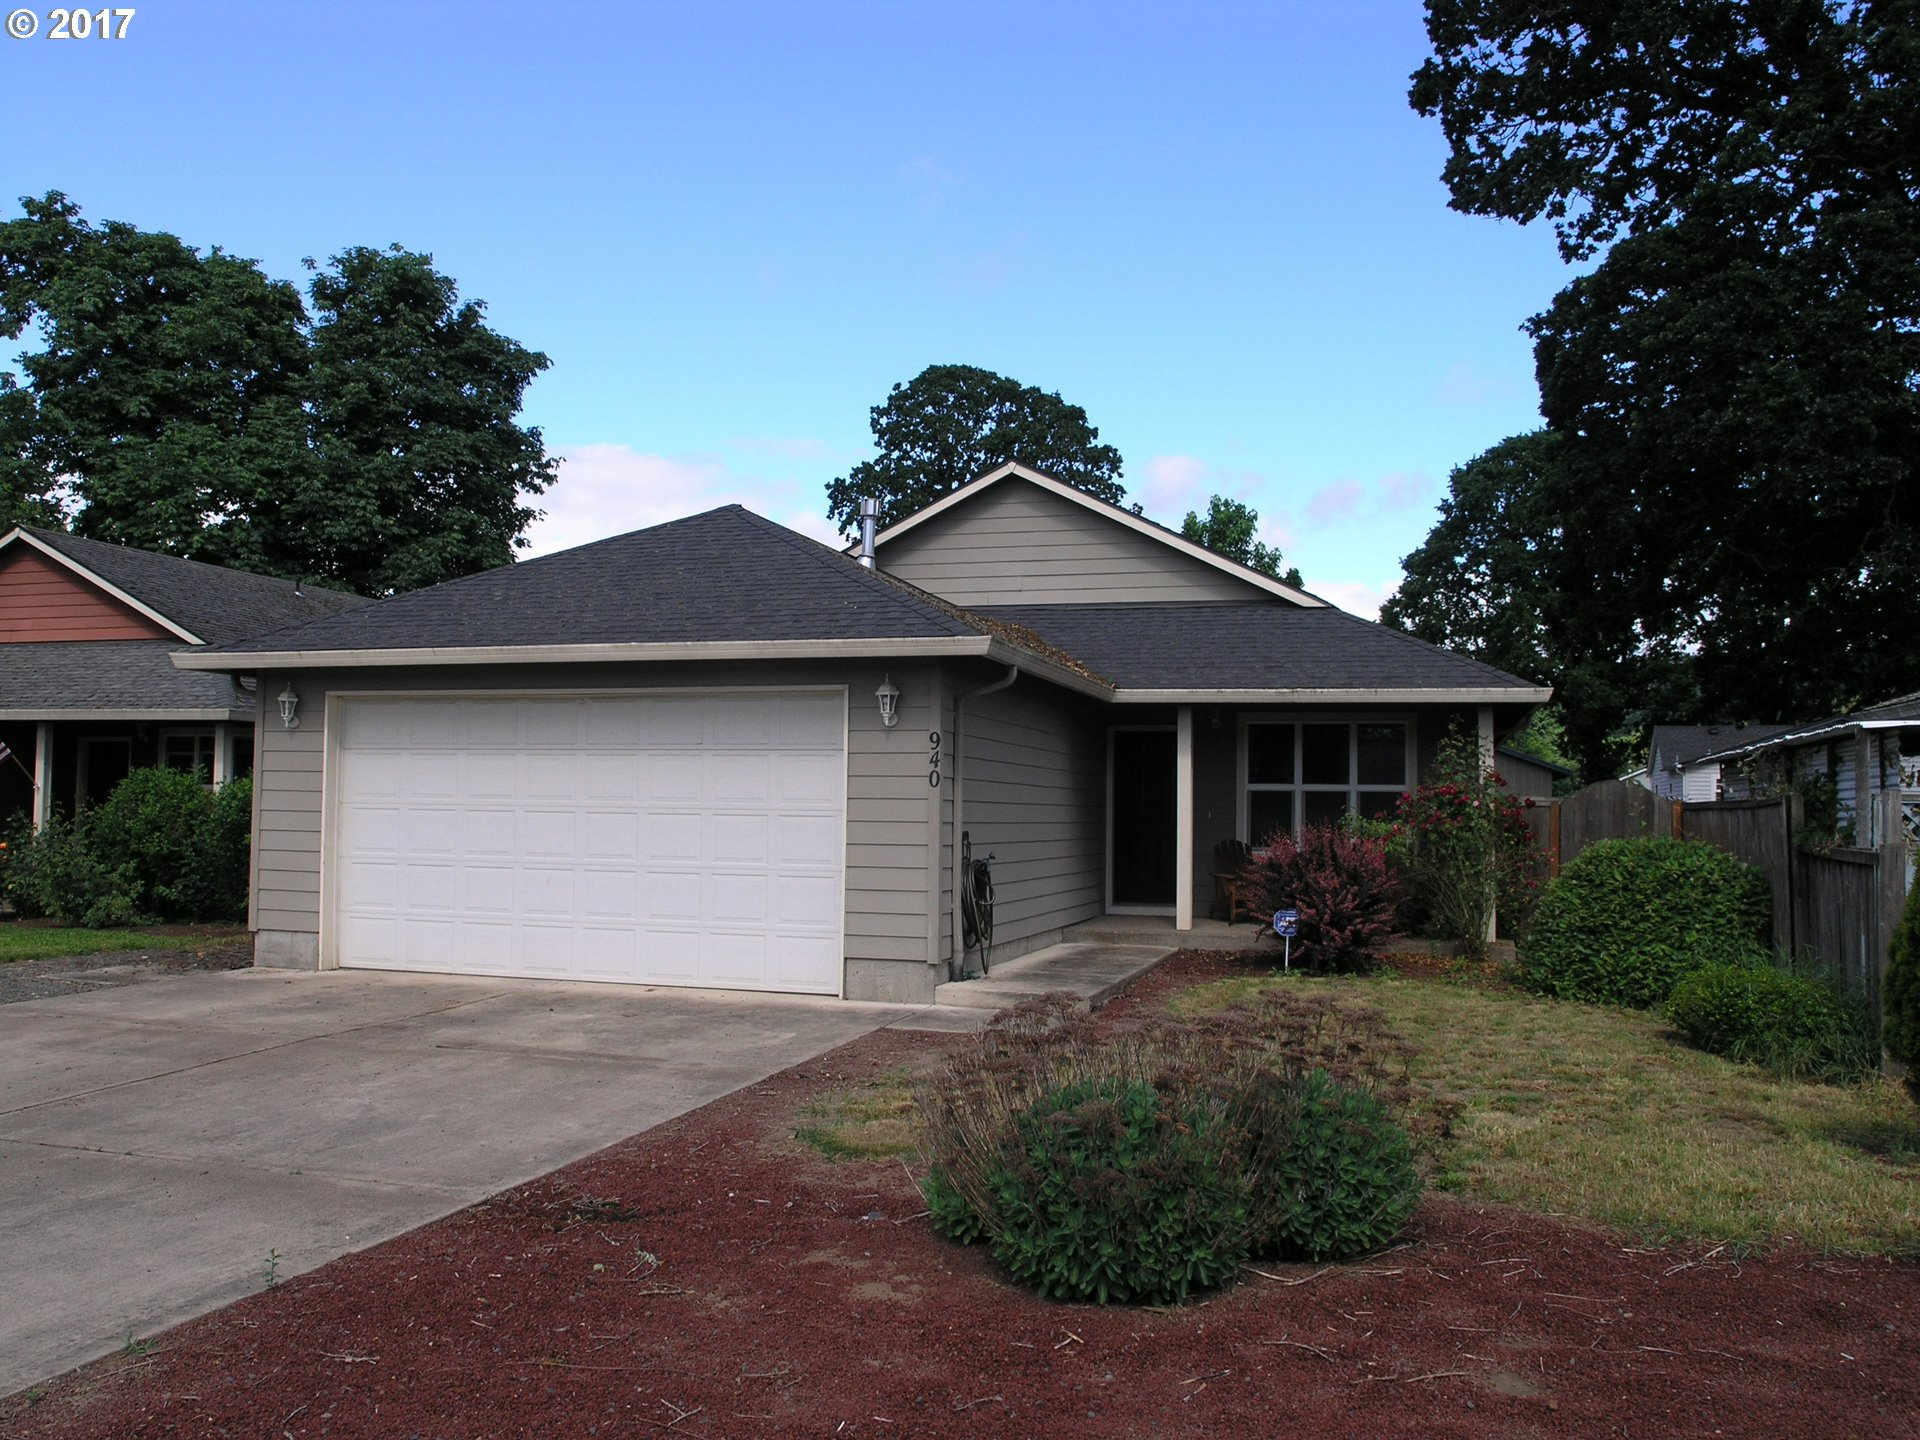 940 SE LOCUST ST, Dundee, OR 97115